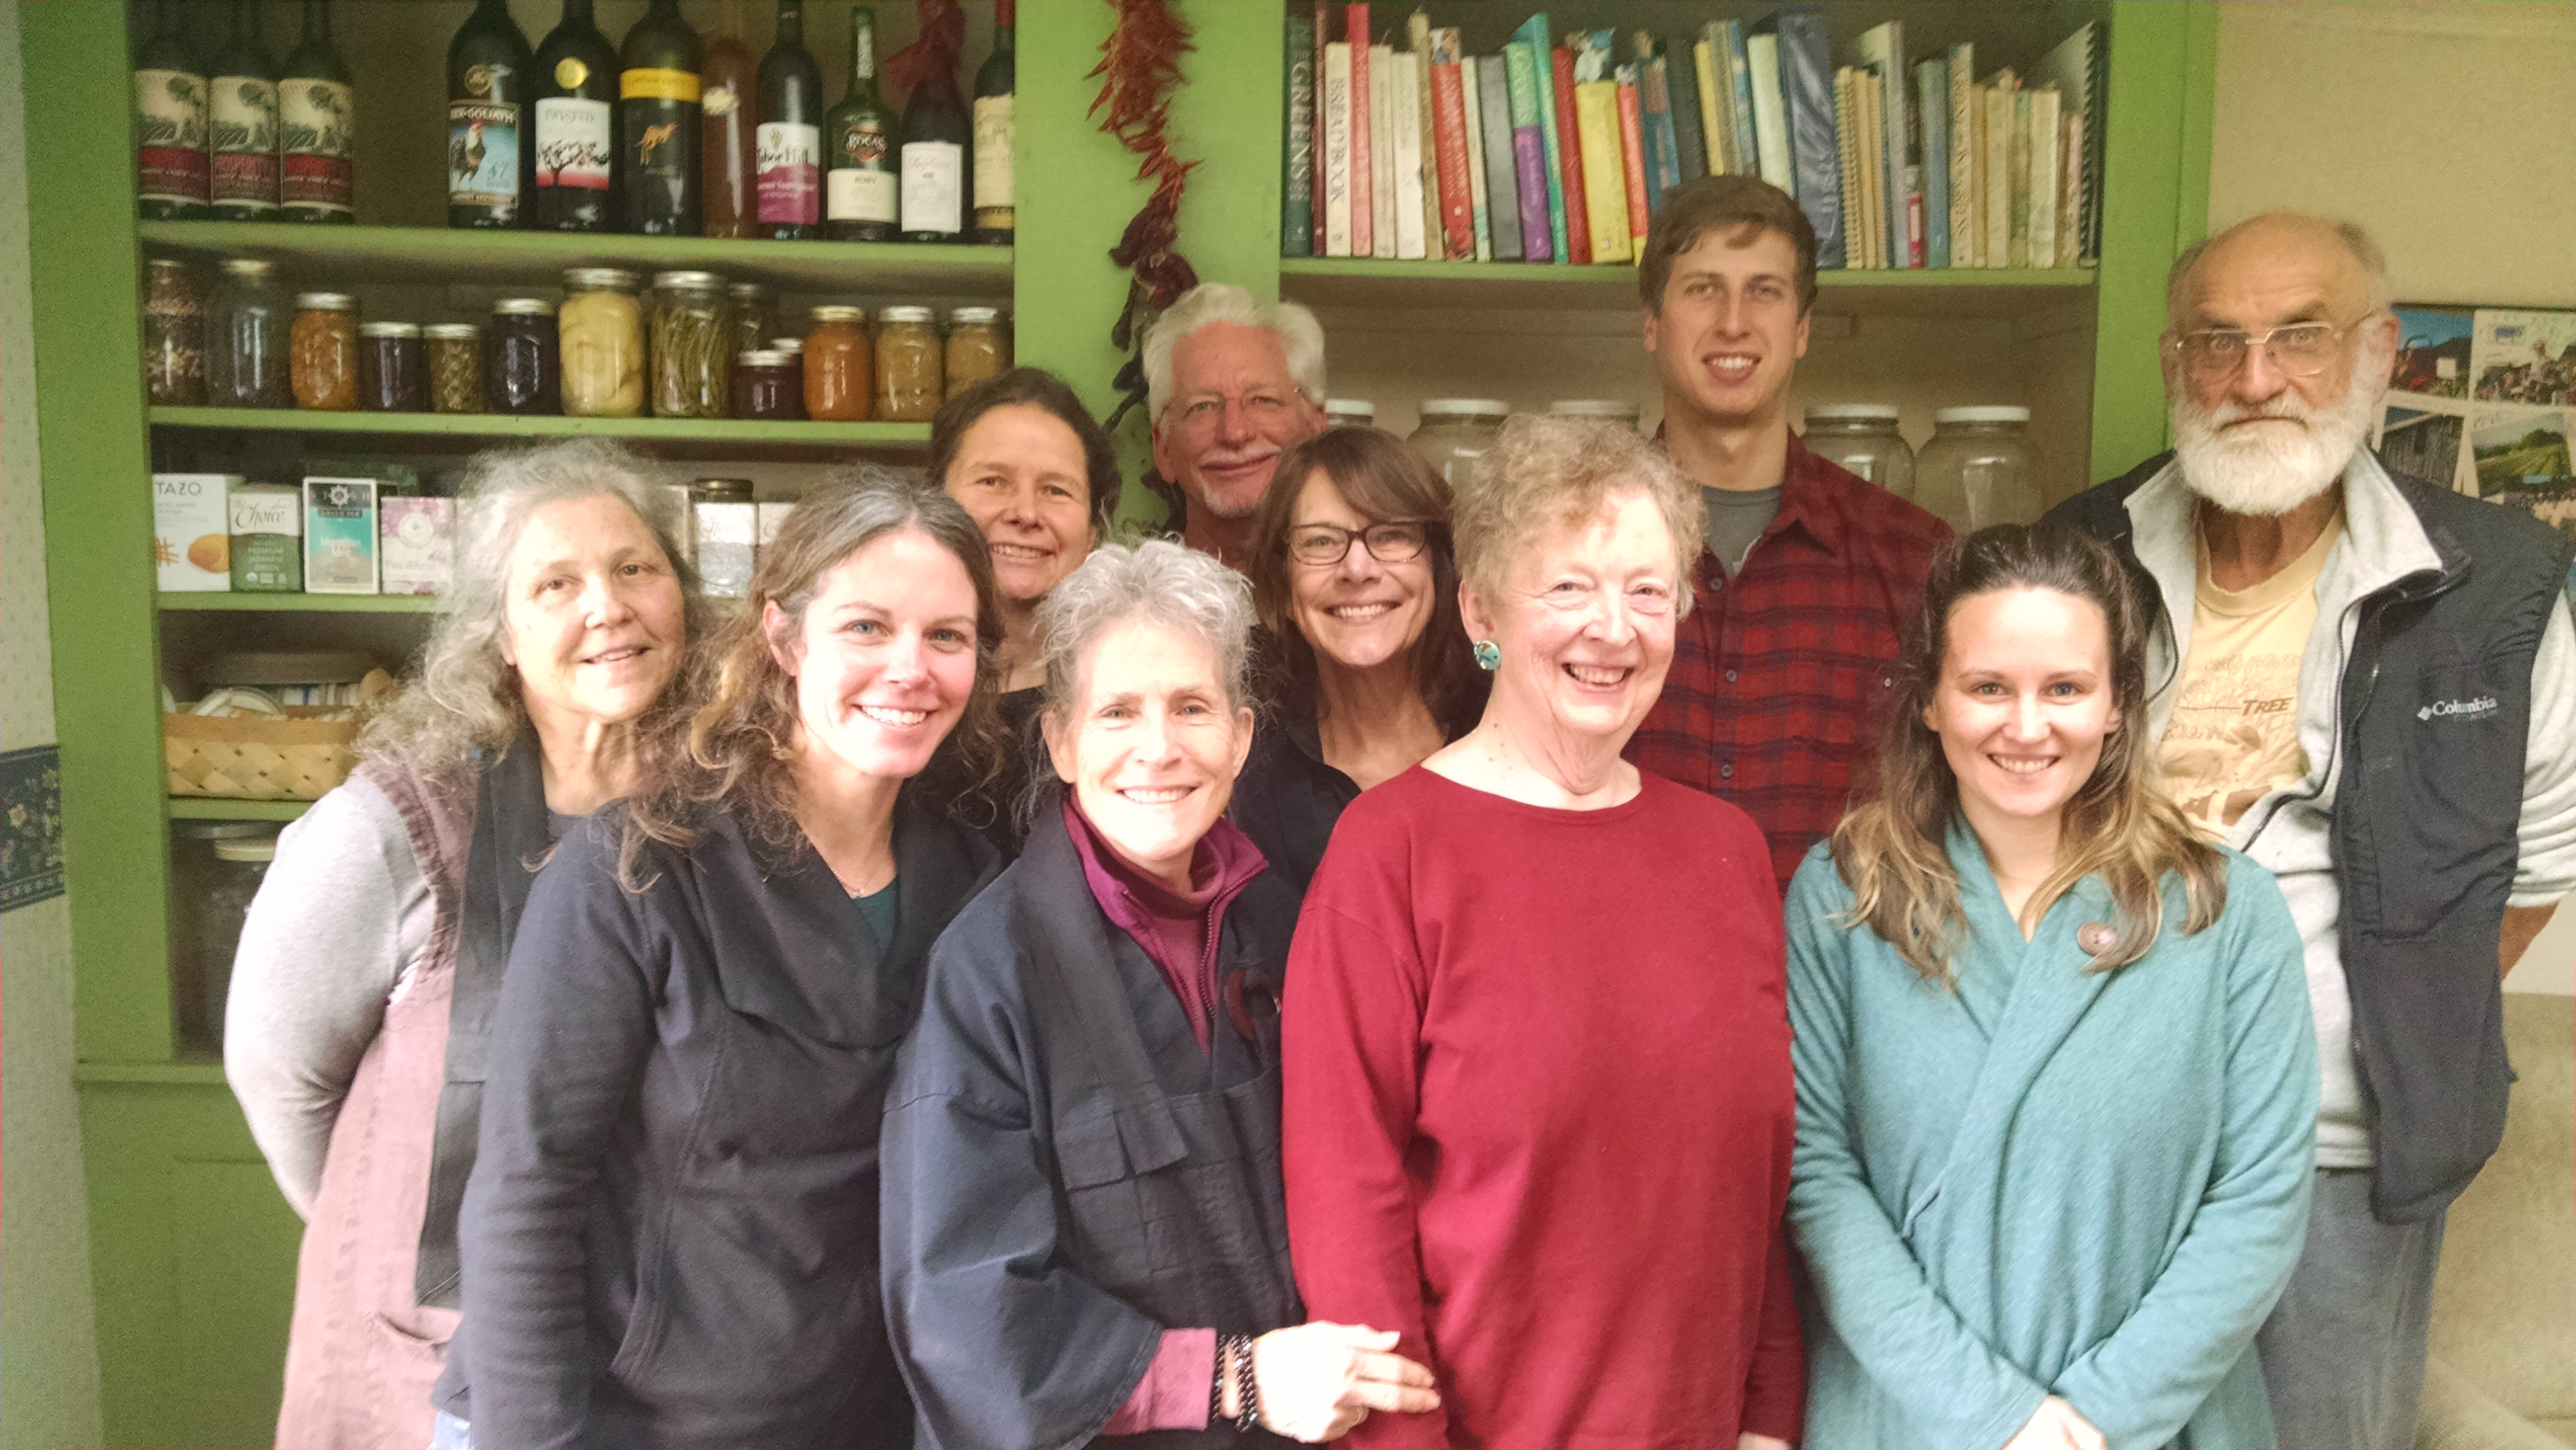 Winter study group empty field zendo if youd like to register for this group a minimum requirement is that you able to participate in at least two of the three sunday retreats sciox Gallery